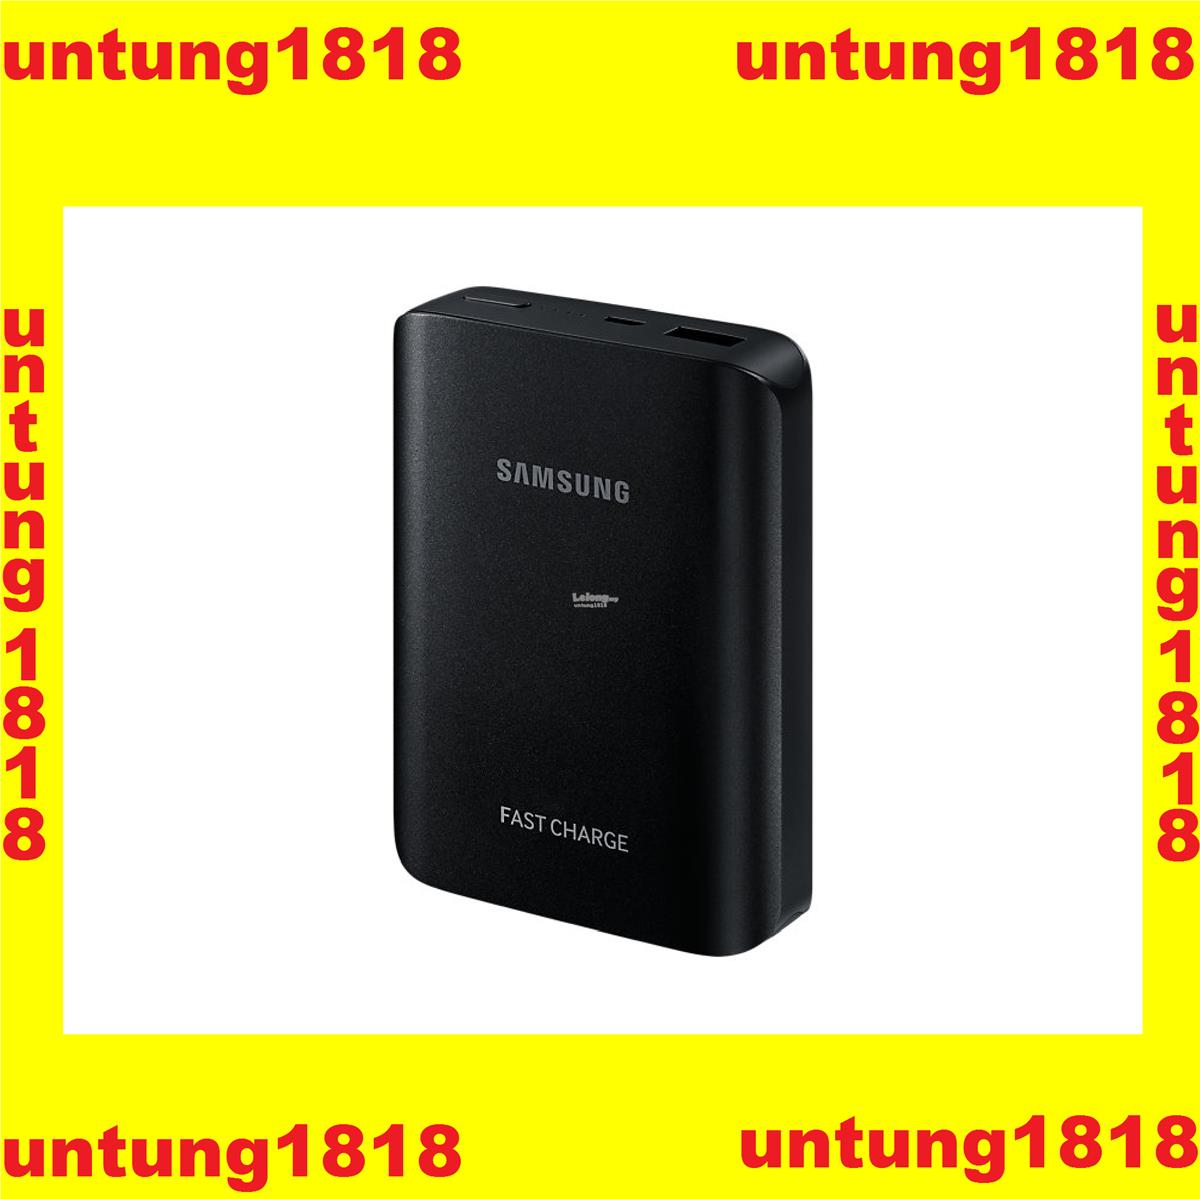 Original Samsung Malaysia.Original Samsung Battery Pack (Fast Charge)